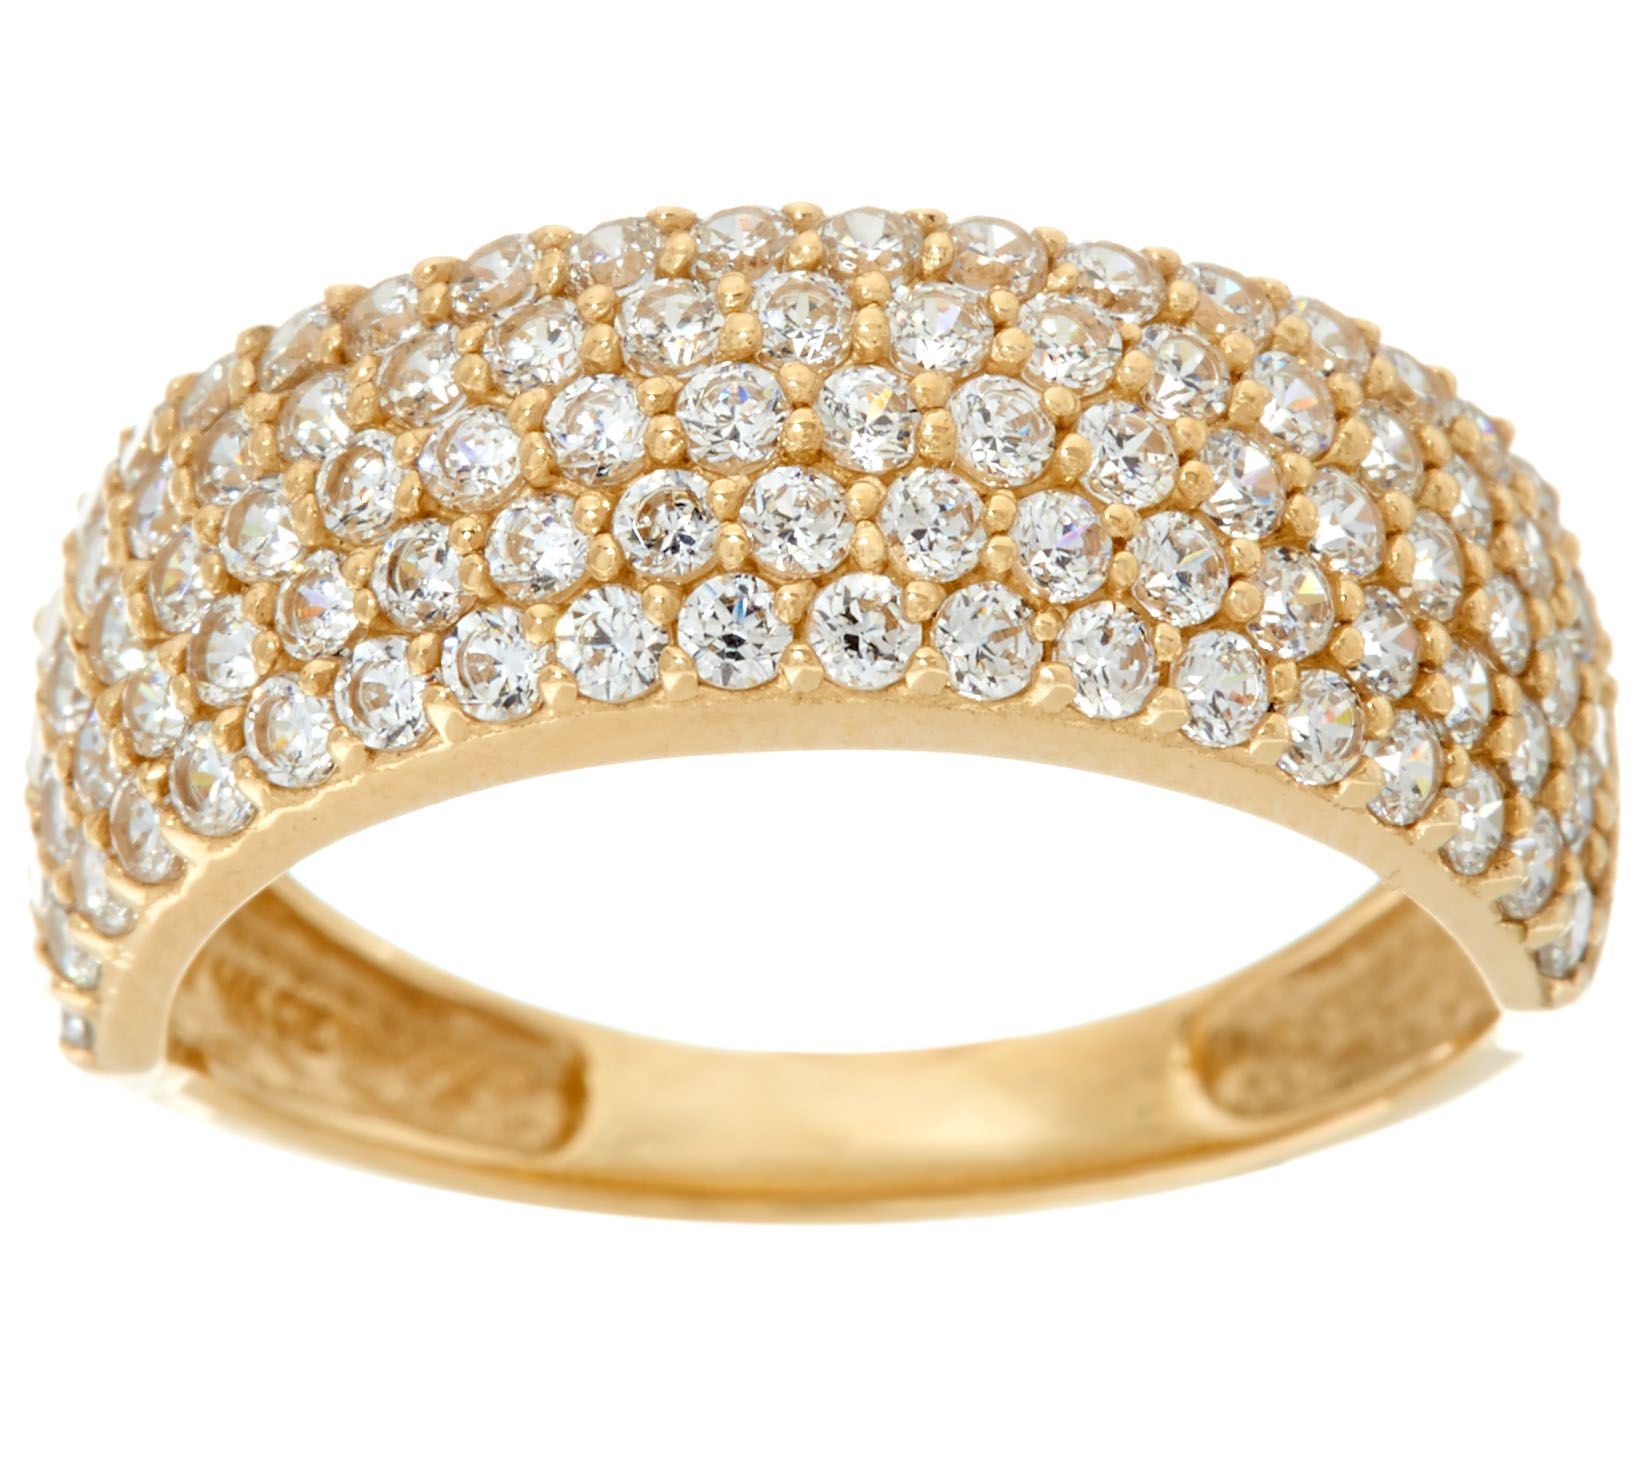 Pavé Bands: Diamonique Five Row Pave' Band Ring, 14K Gold